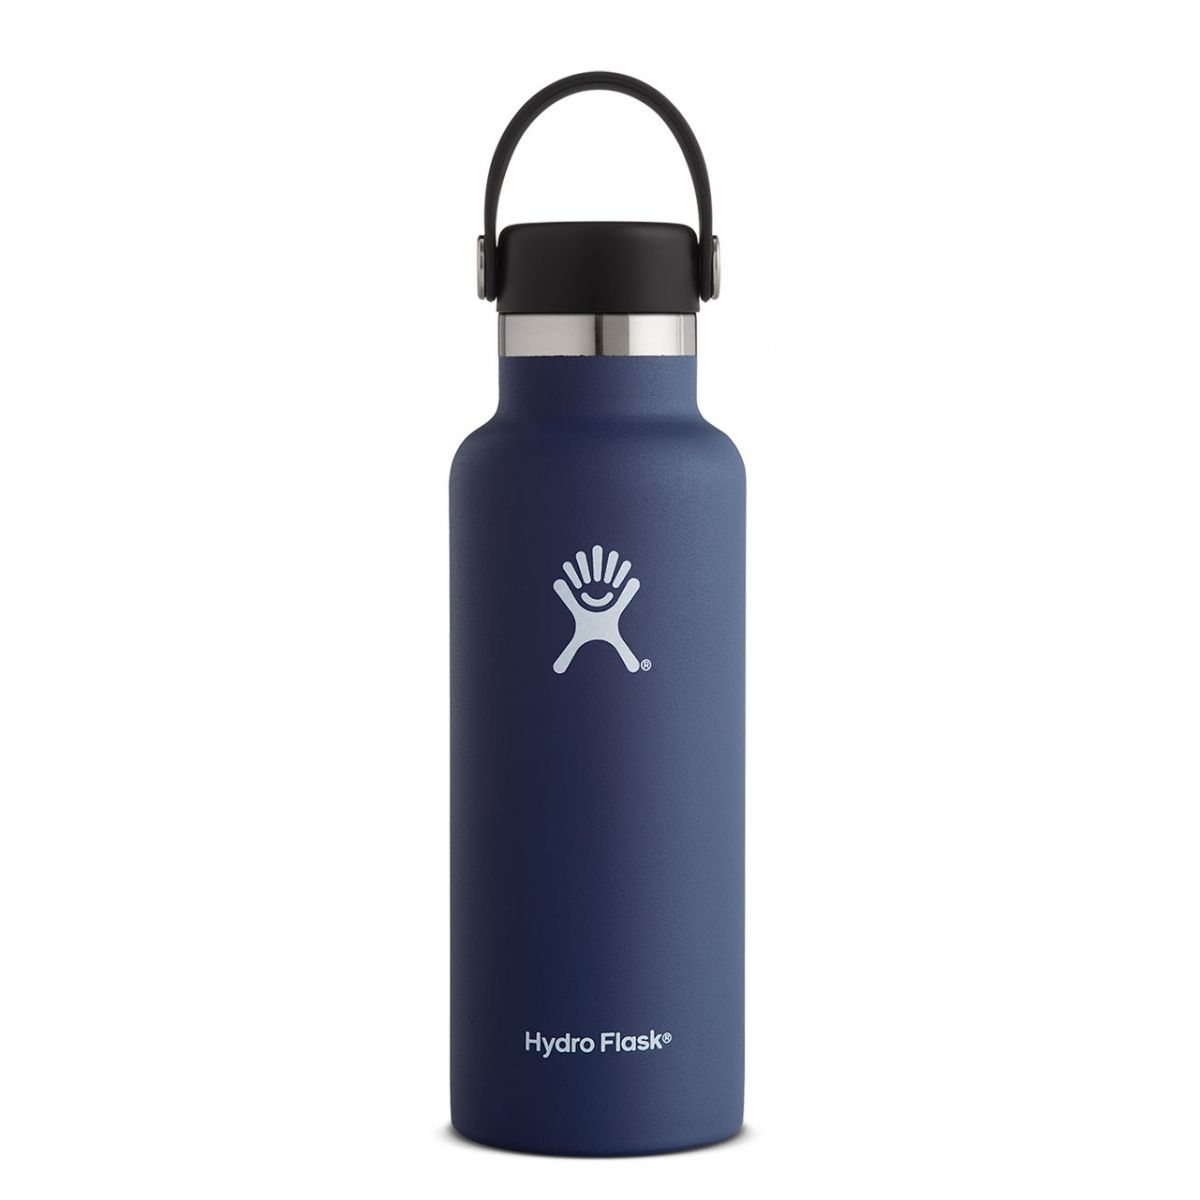 hydroflask 18oz standard mouth in cobalt